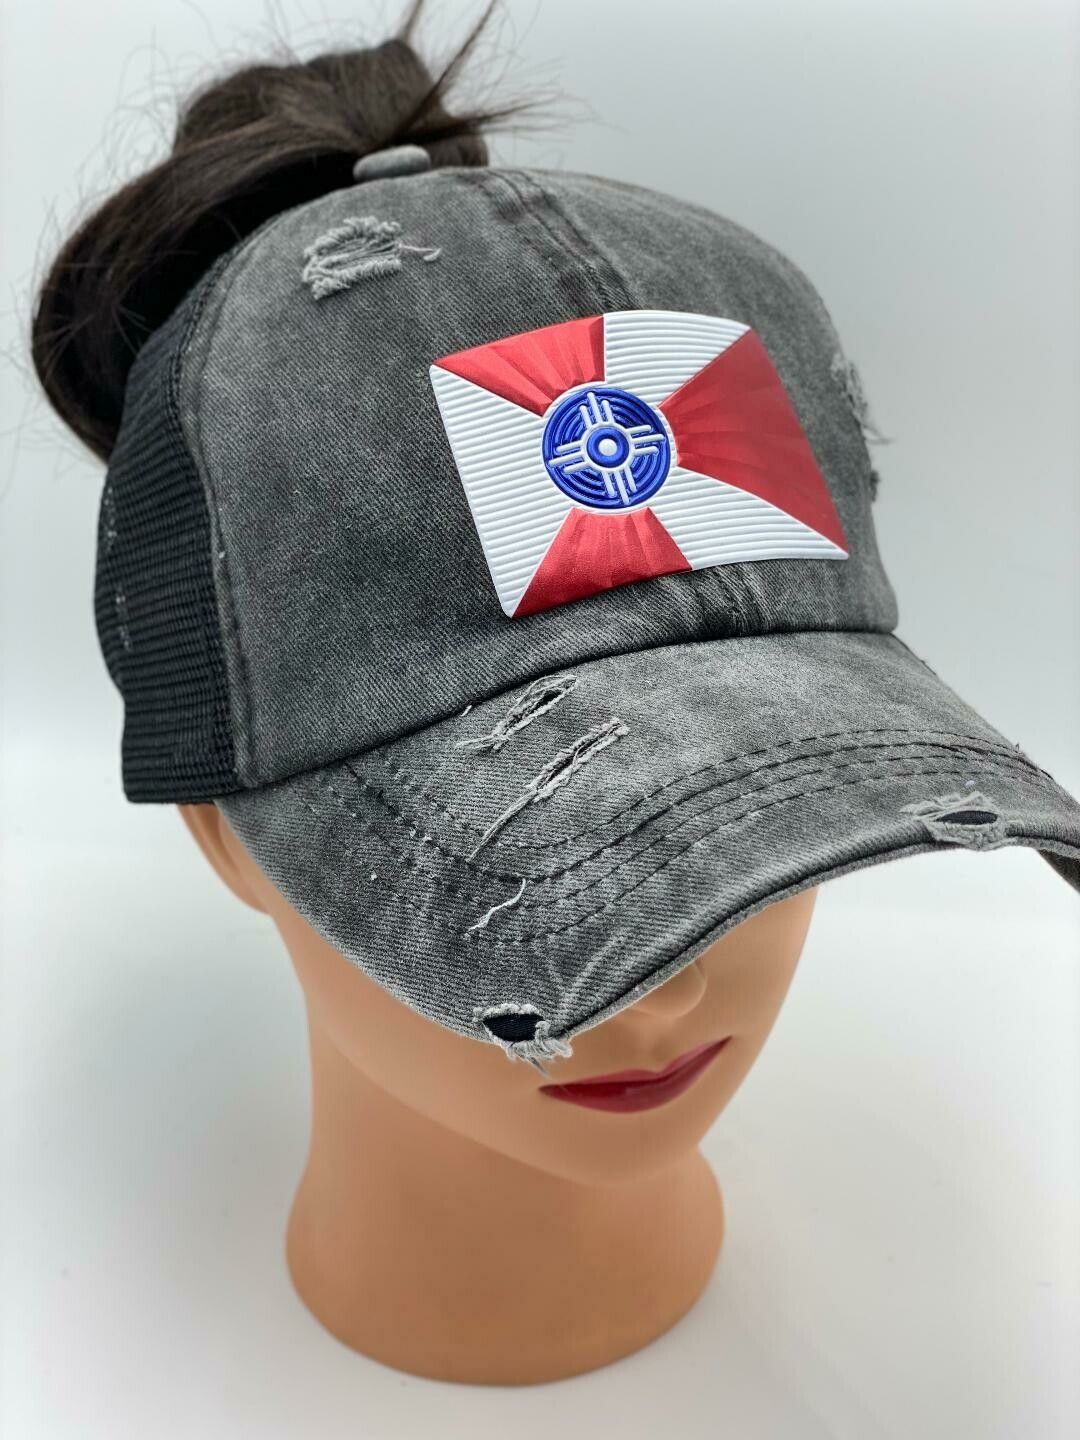 Wichita Flag Vintage Messy High Bun Ponytail Mesh Baseball Cap Washed Cotton Trucker Cap